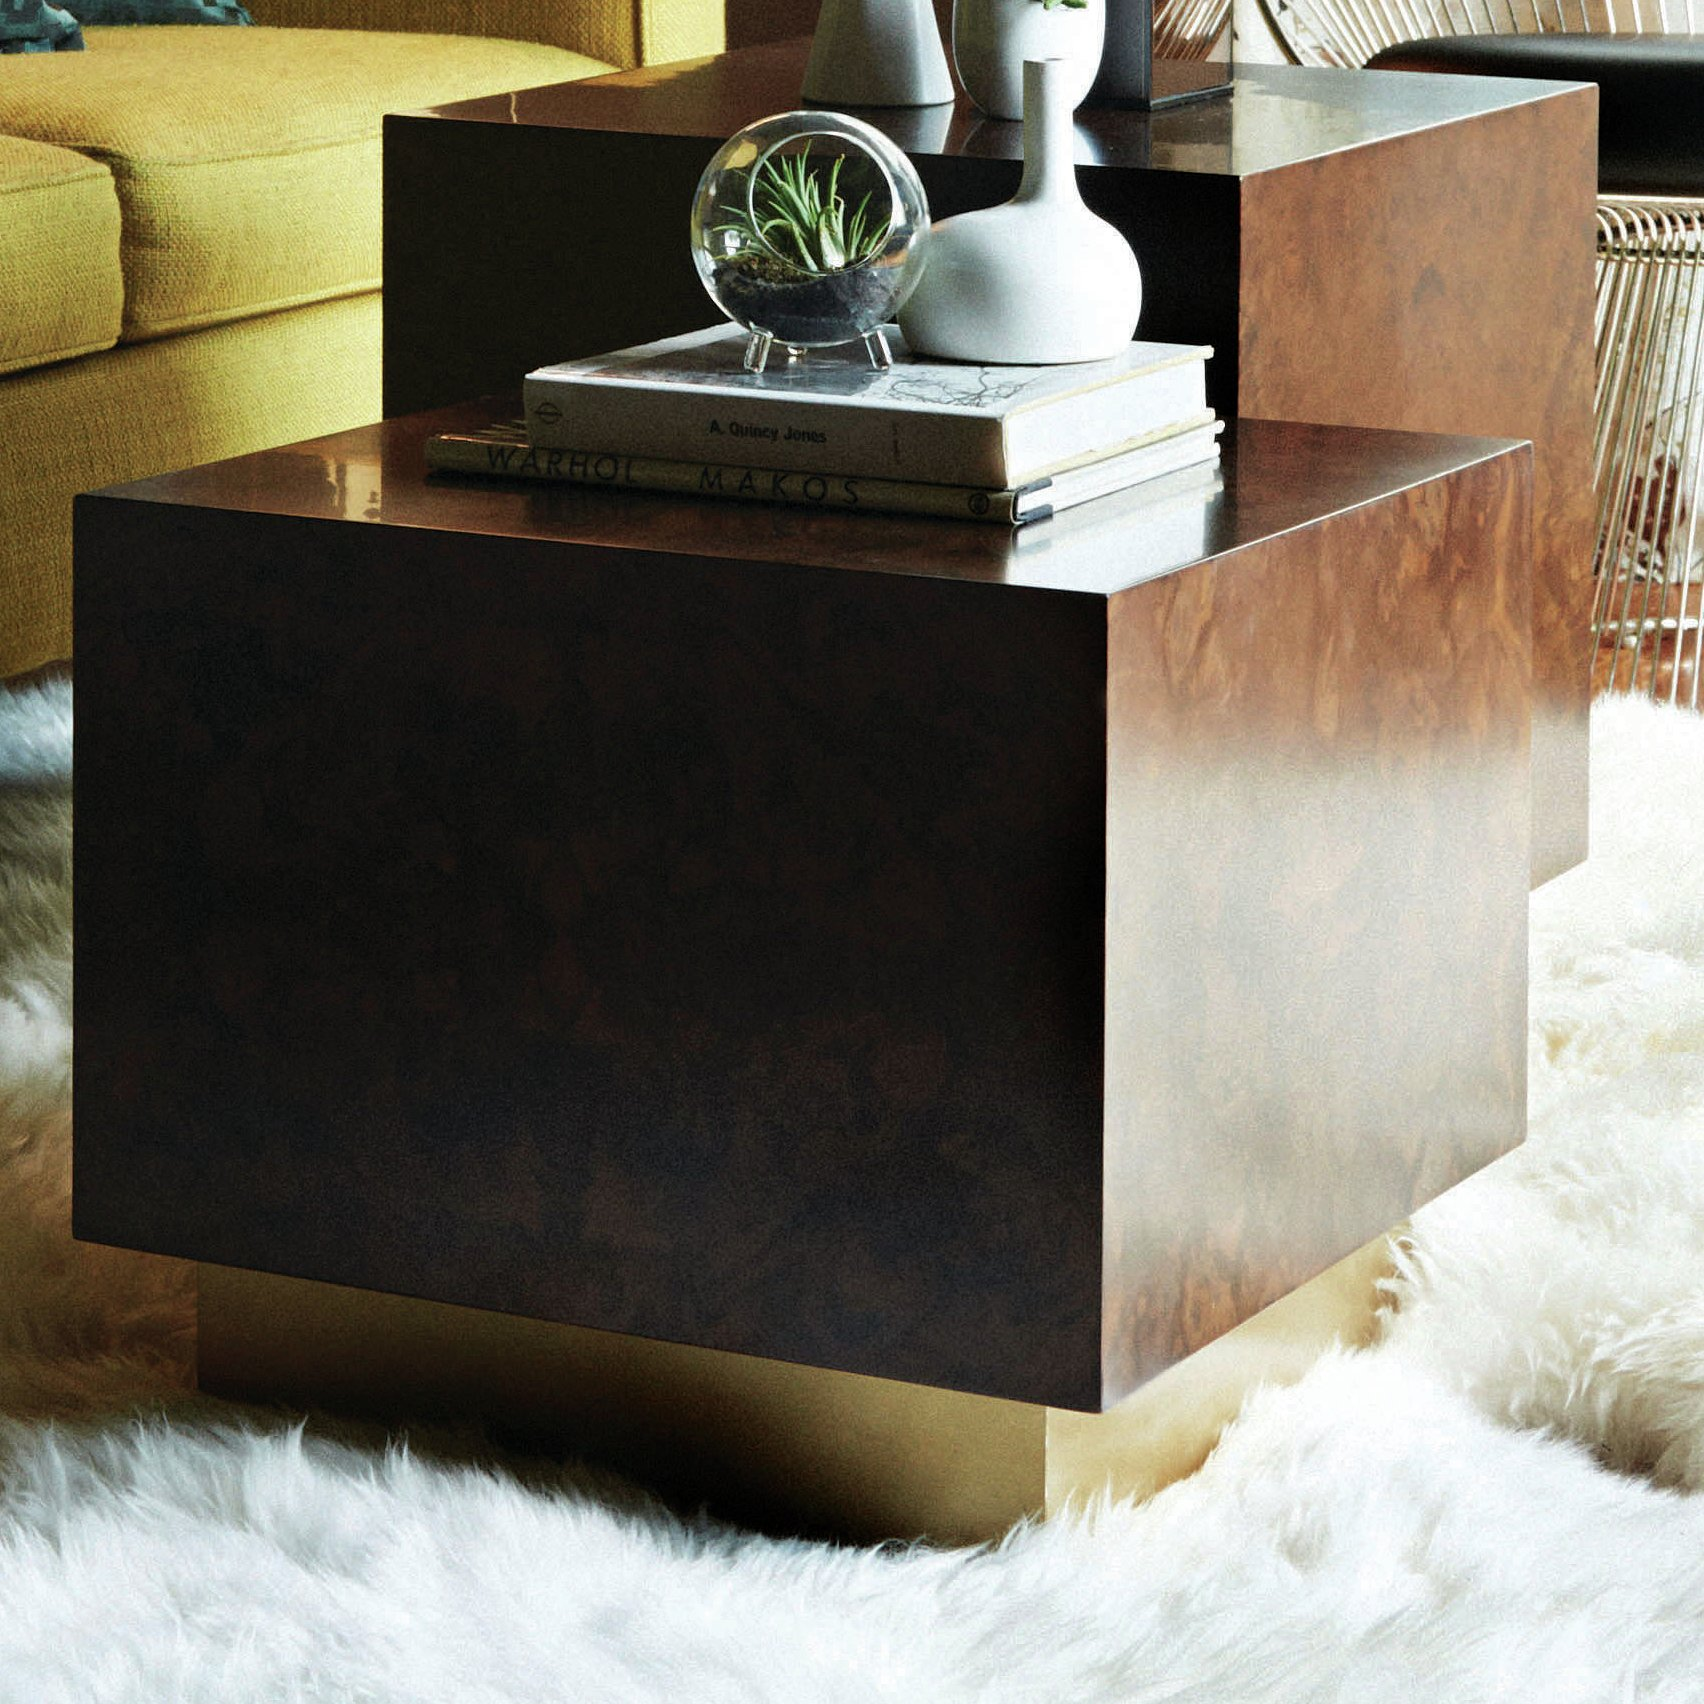 milton burl cube end table wood accent side light parker furniture room essentials mirror white crystal lamp and gold oversized armchair target bedside lamps circular nest tables